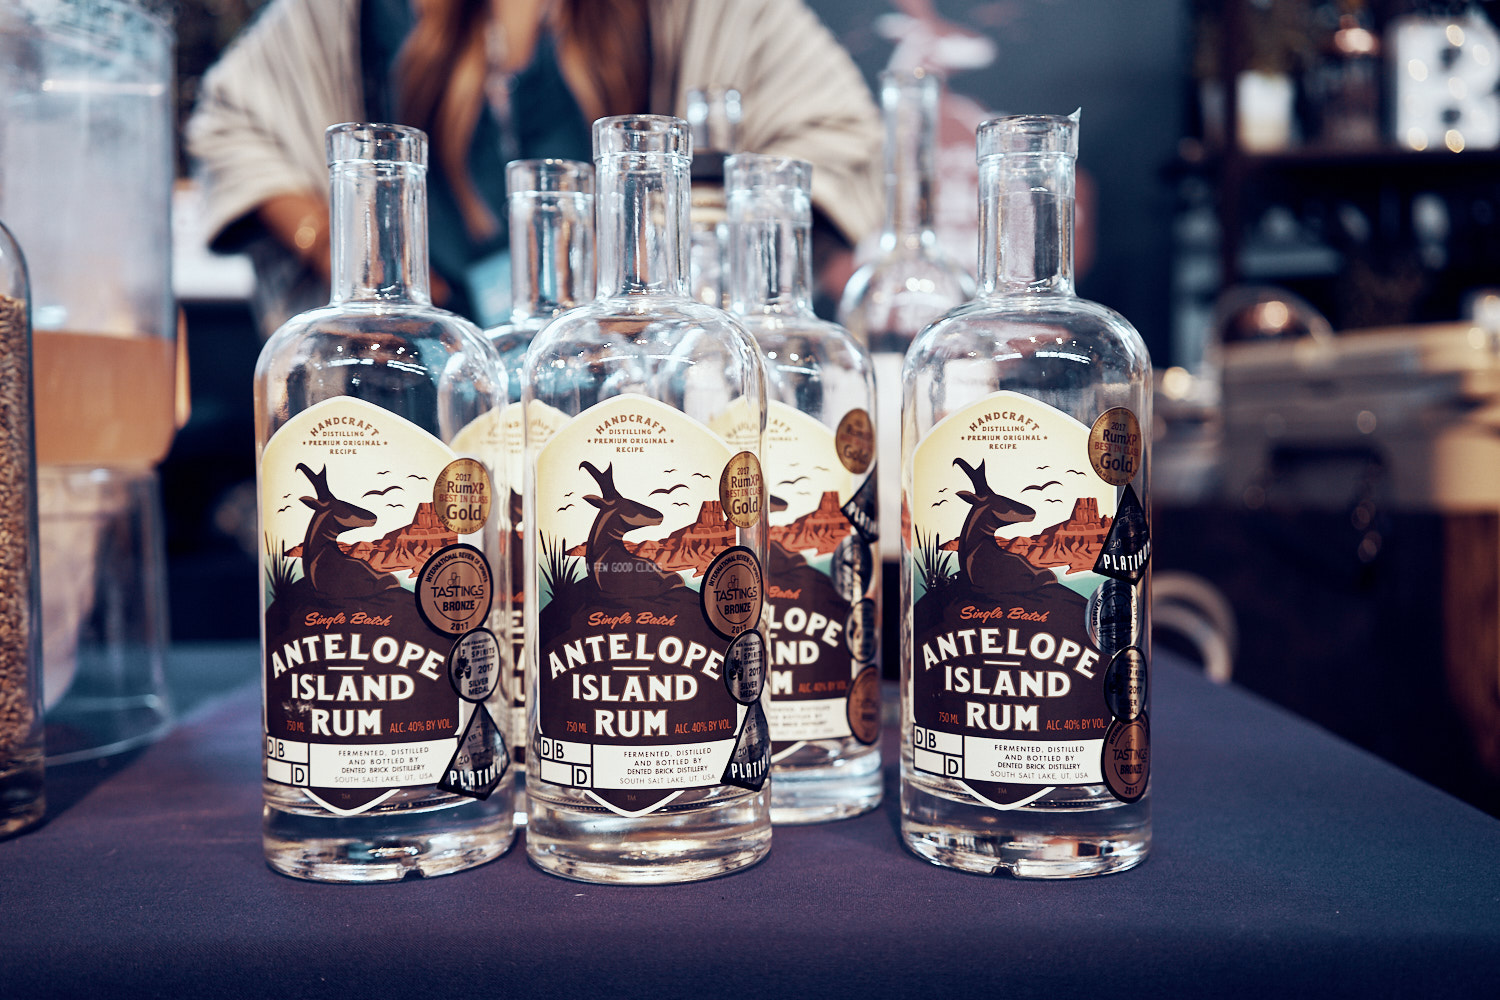 antelope-rum-at-food-festival-san-francisco-event-photography